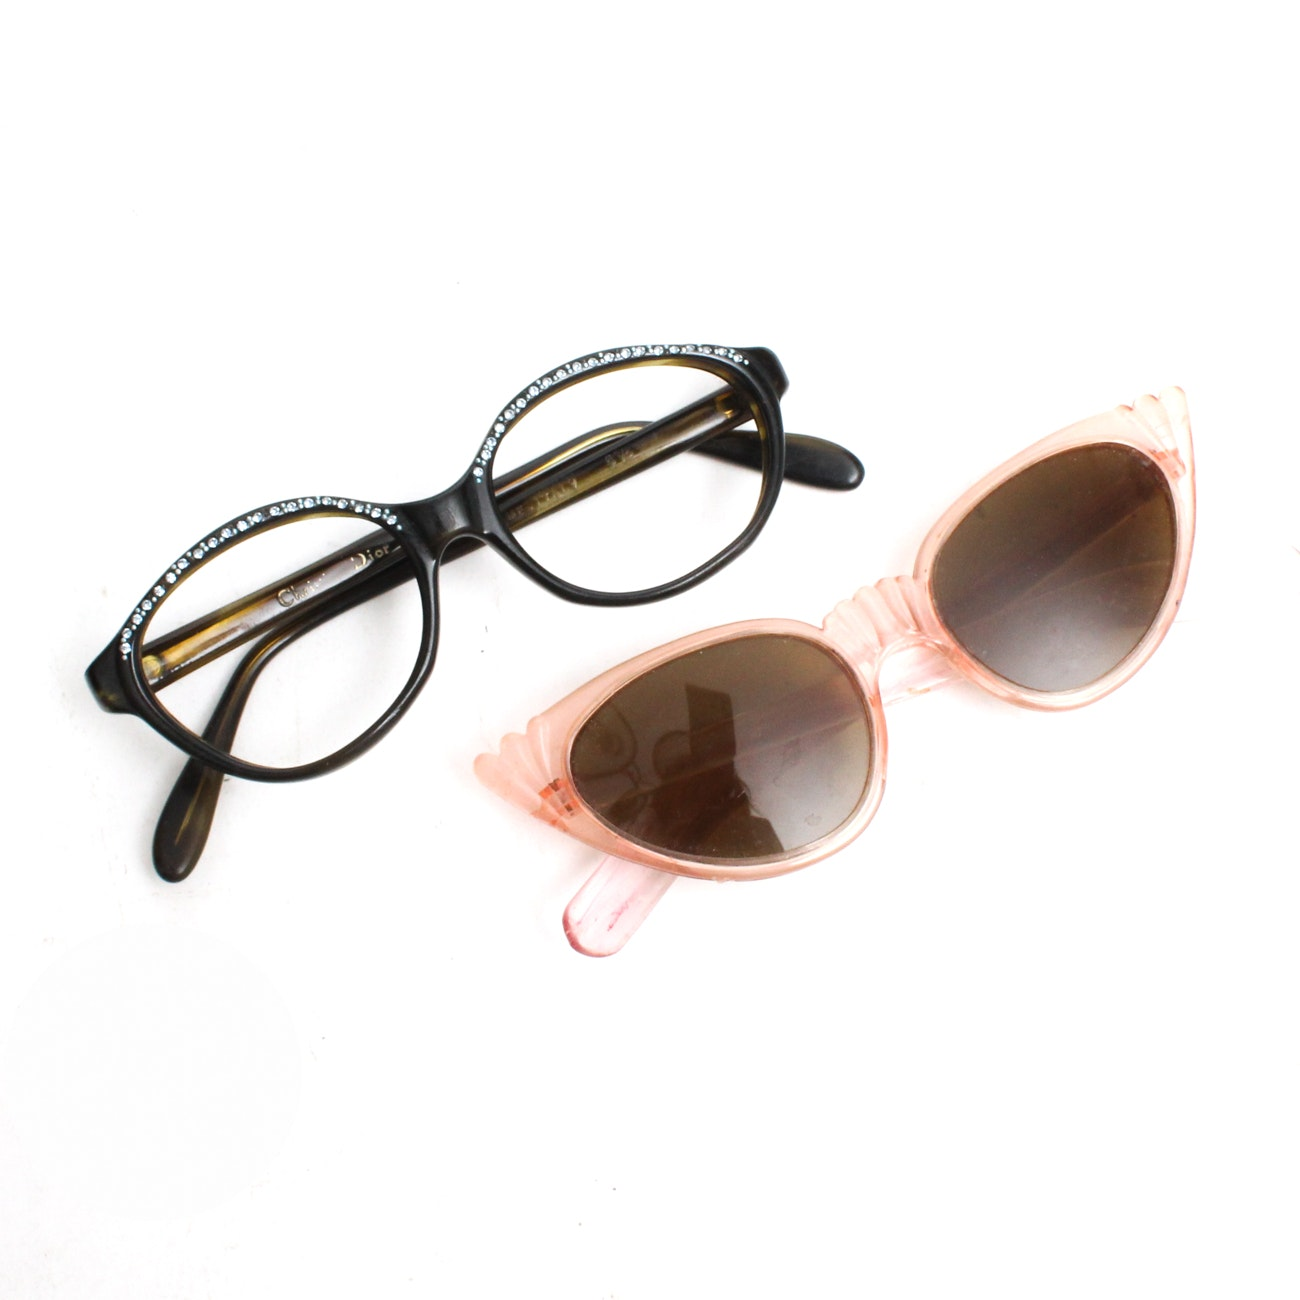 Vintage Christian Dior Eyeglass Frames and Pink Sunglasses